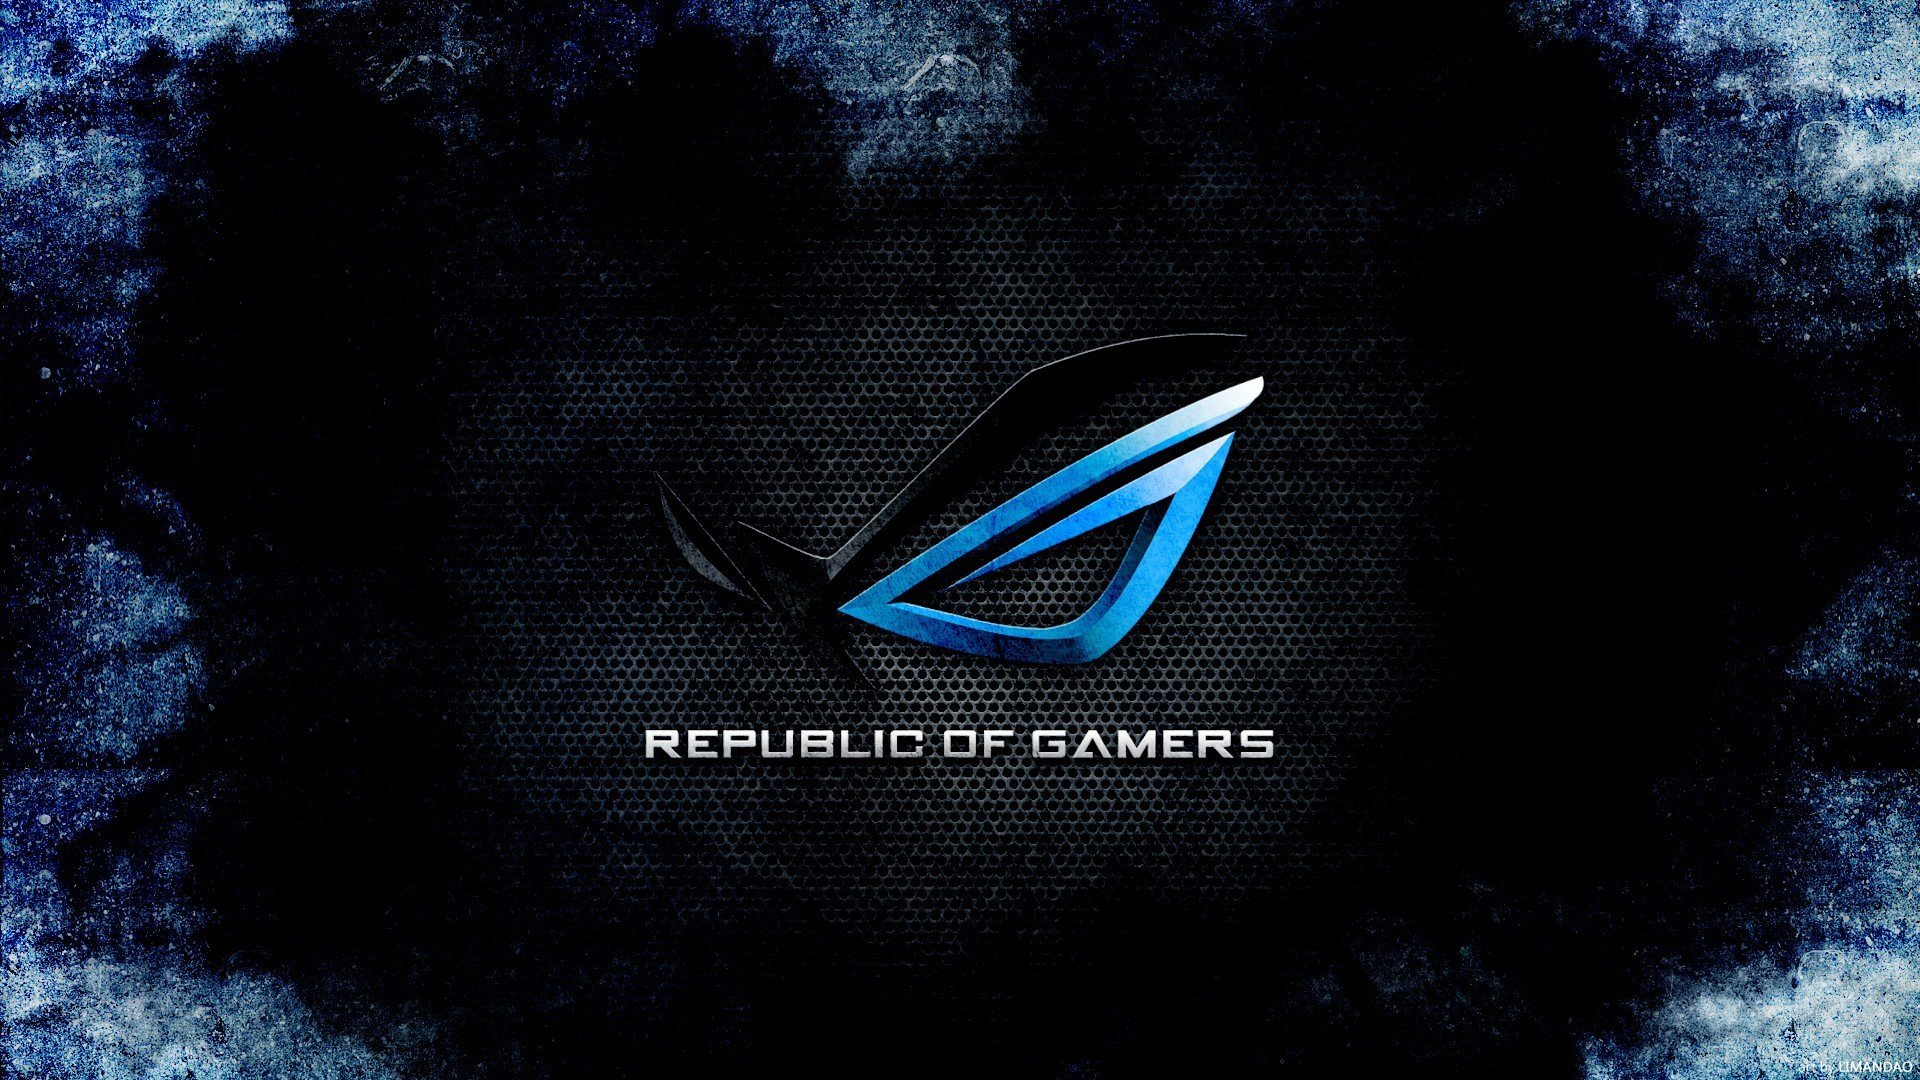 63 republic of gamers fondos de pantalla hd fondos de escritorio